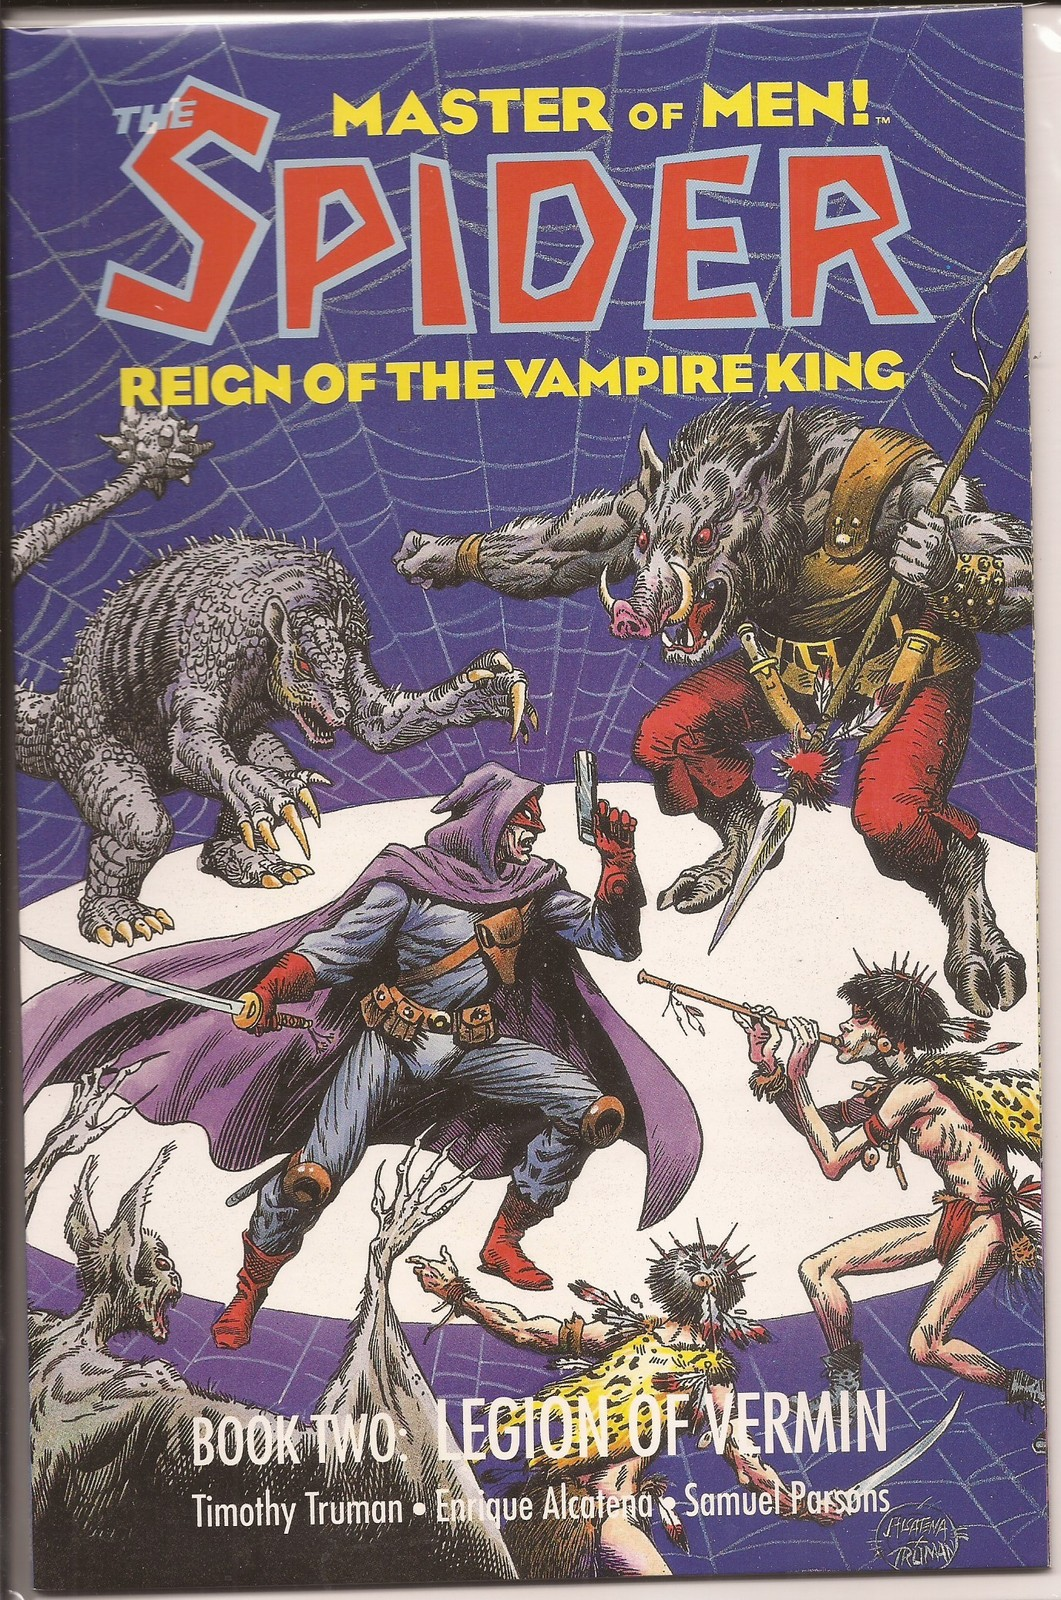 Eclipse The Spider Reign Of The Vampire King GN Lot Books One & Two